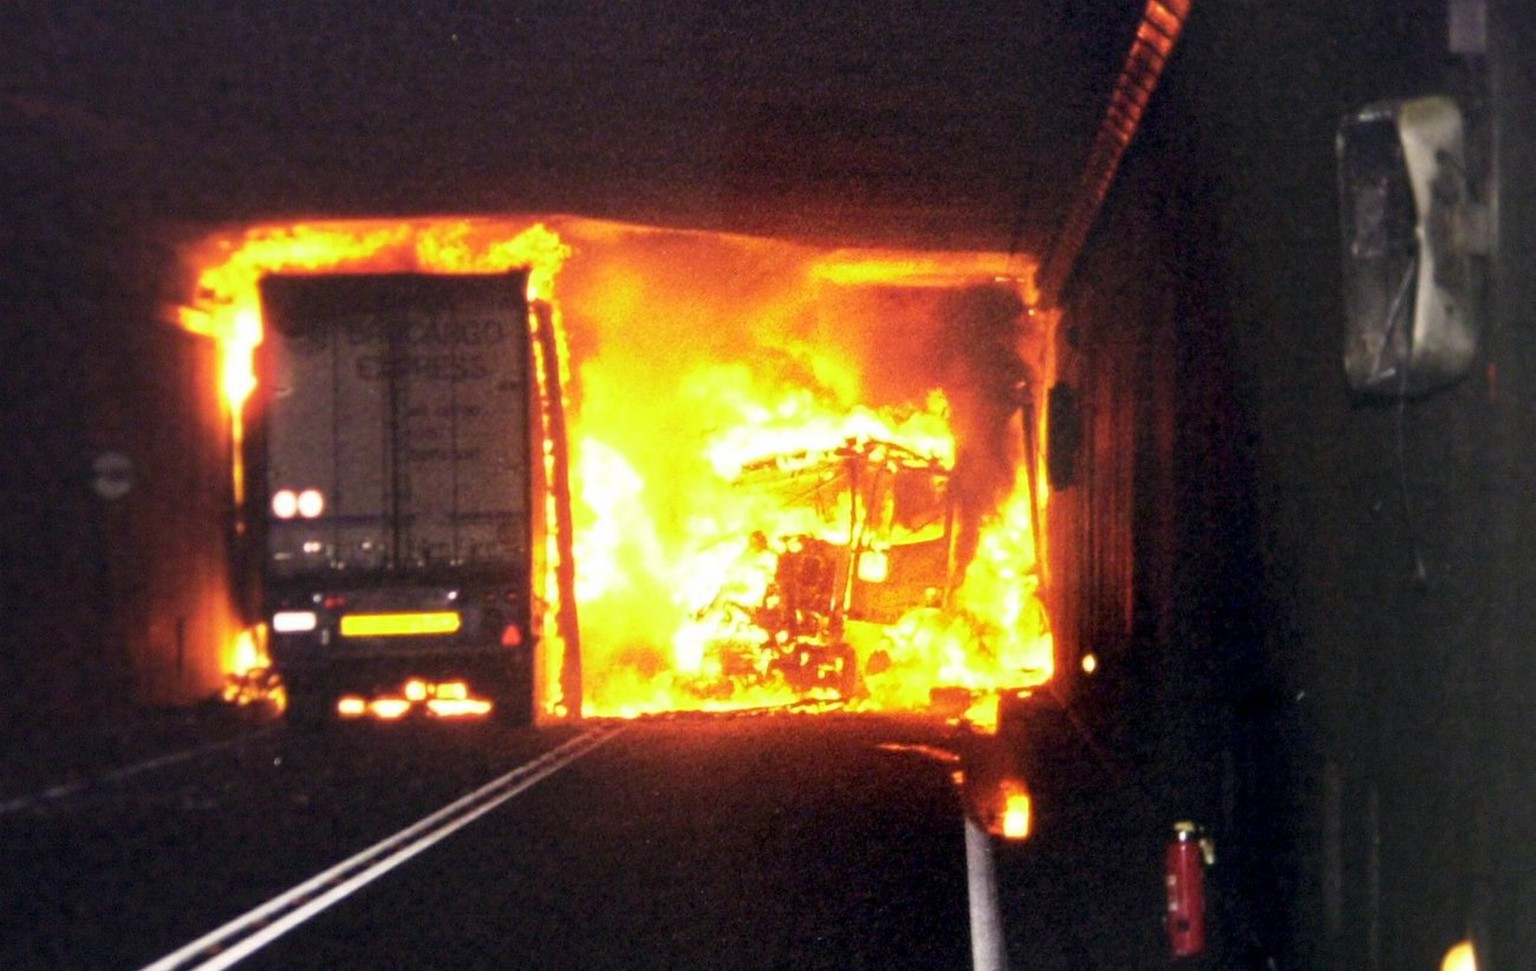 This Police handout picture shows the accident site in the Gotthard tunnel, shortly after the fire broked out, Wednesday, October 24, 2001. At least ten people were killed in a head-on truck crash and fire in a major Alpine tunnel, but officials said safety features prevented a much worse disaster. (KEYSTONE/POLICE CANTONAL TESSIN/Str)  ===  ===